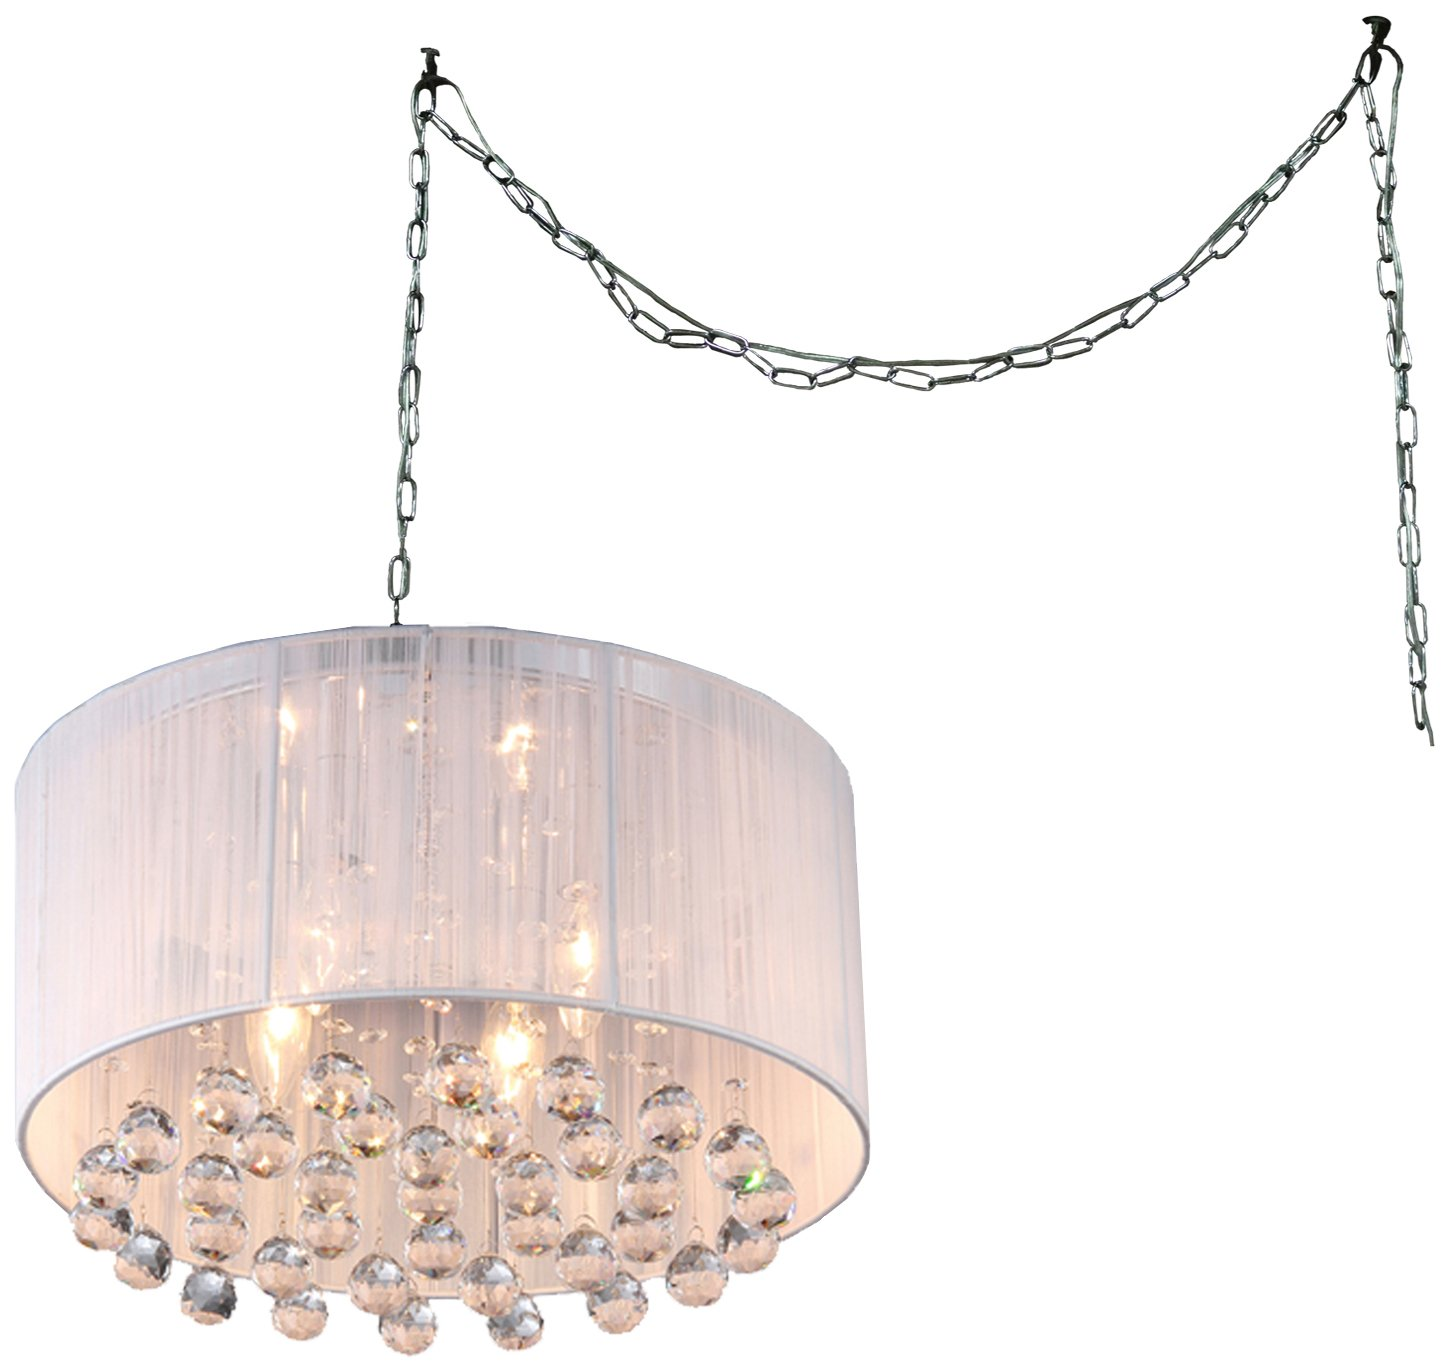 Whse of Tiffany RL8057 SWAG White Mineya 5-Light Swag Lamp, 17'', Chrome by Whse of Tiffany